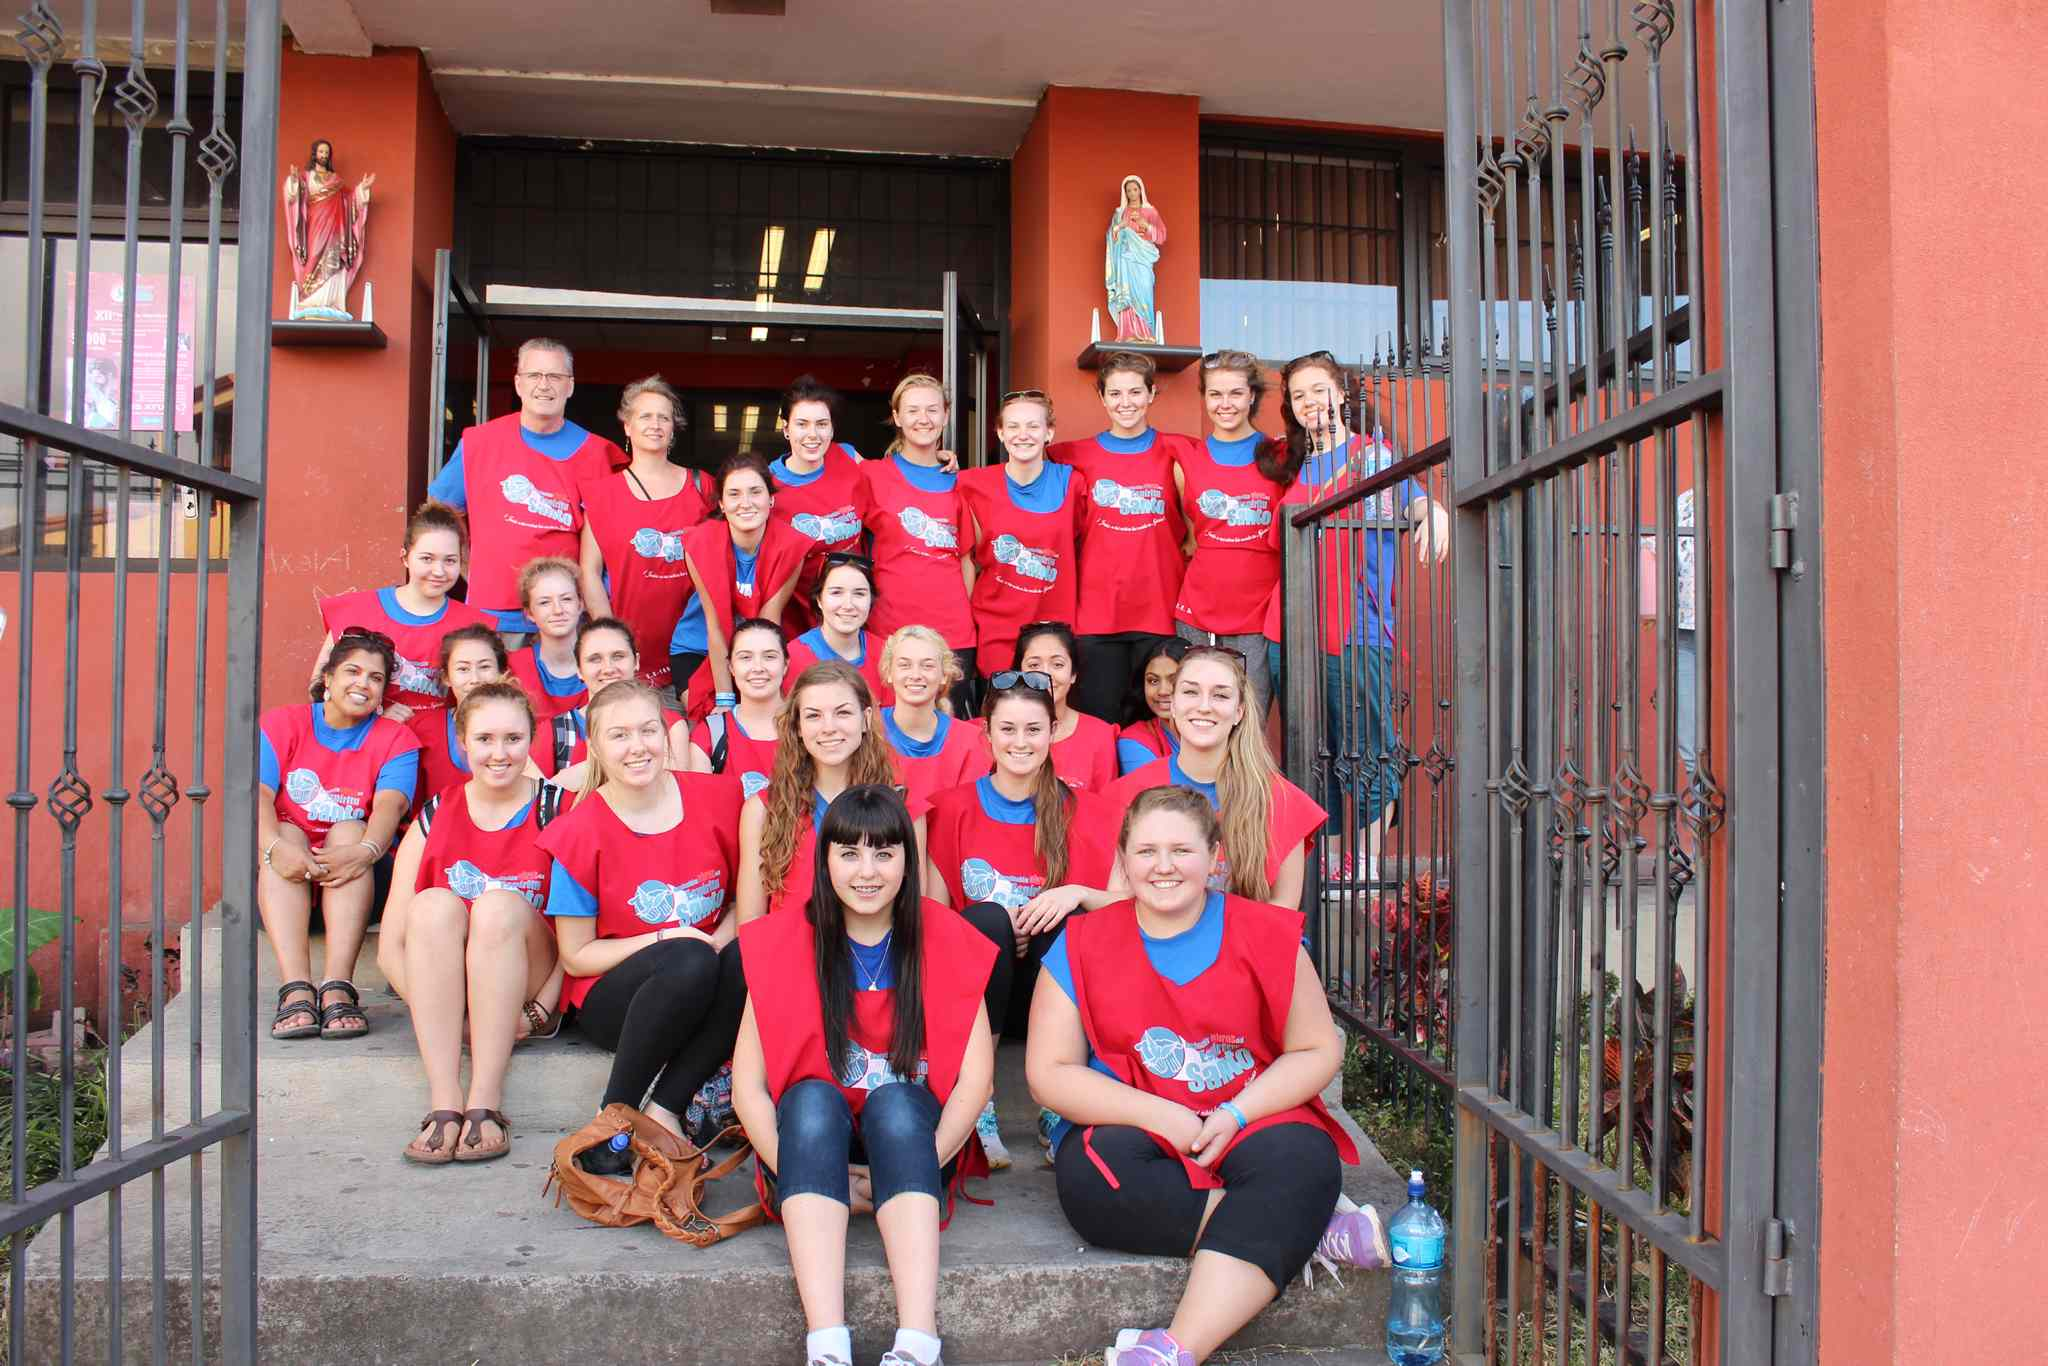 River East Collegiate students and staff are shown at the Asociacion Obras del Espiritu Santo orphanage near San Jose, Costa Rica. The group was in the Central American country as part of a nine-day service tour.